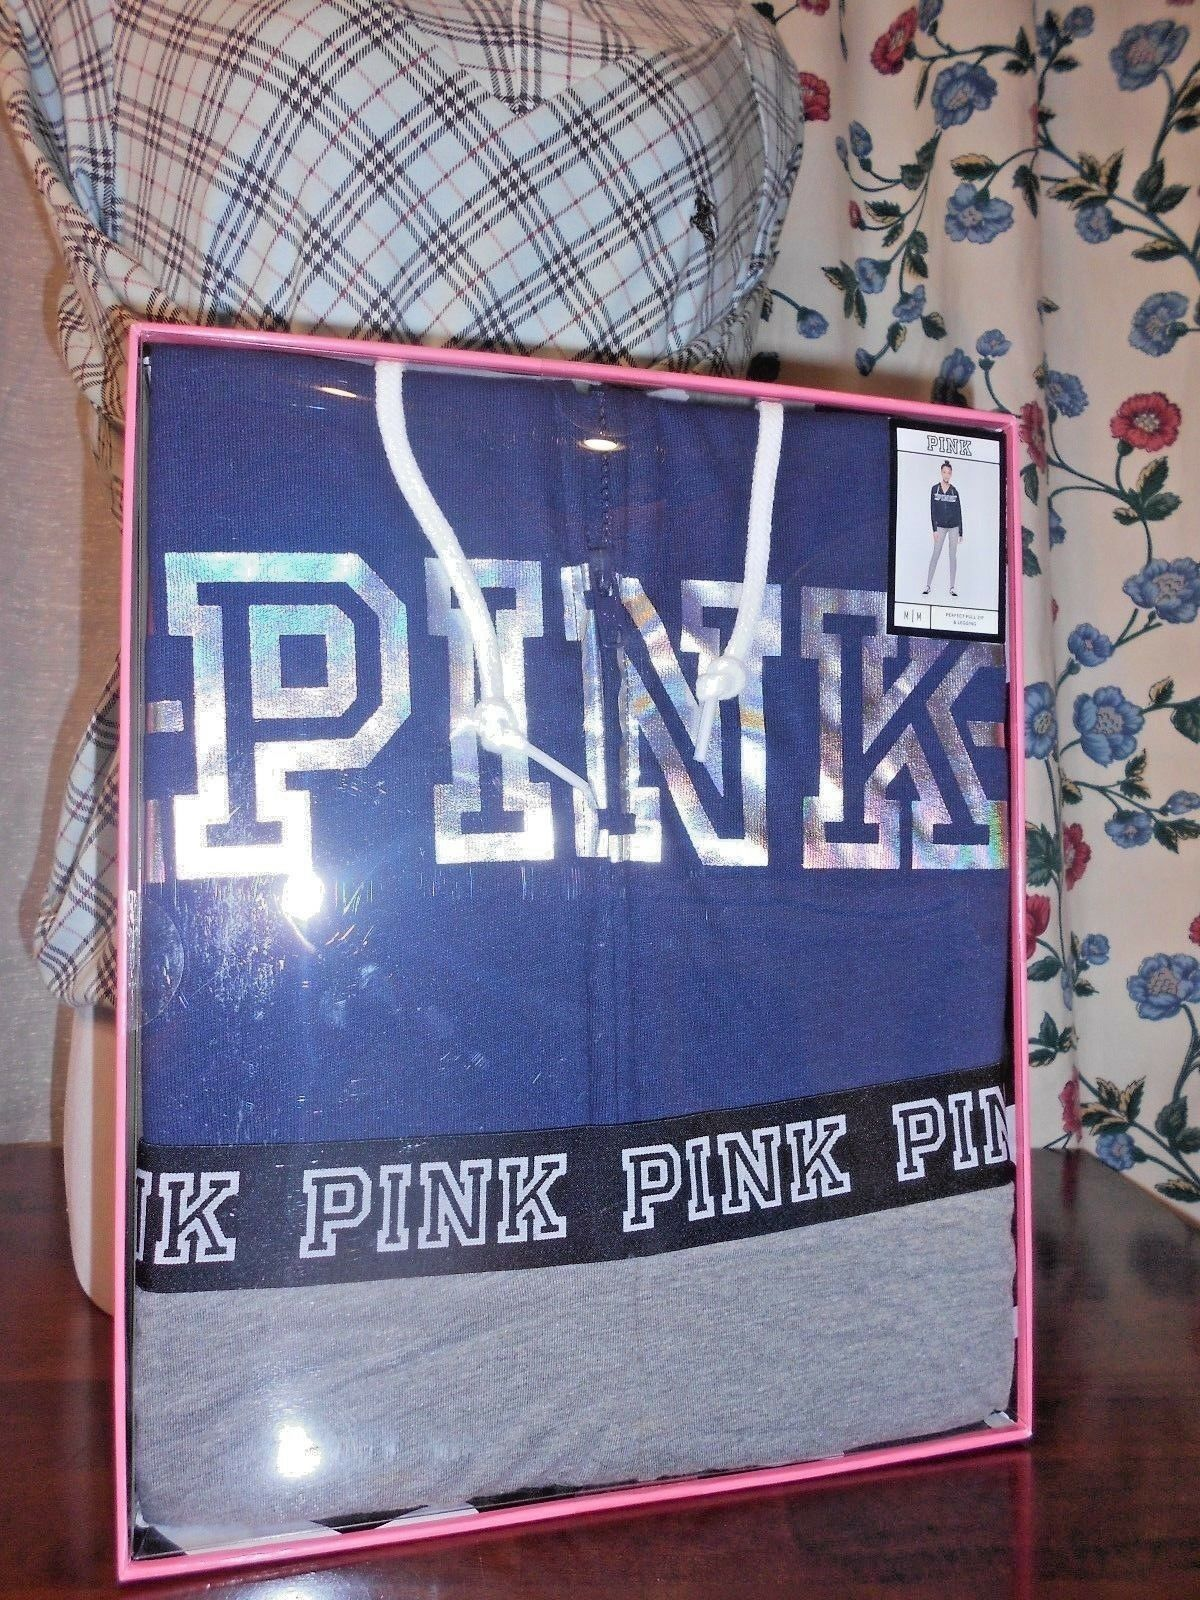 VICTORIA'S SECRET PINK PERFECT FULL ZIP FOODIE & LEGGING GIFTSET BNWT  64.95 M